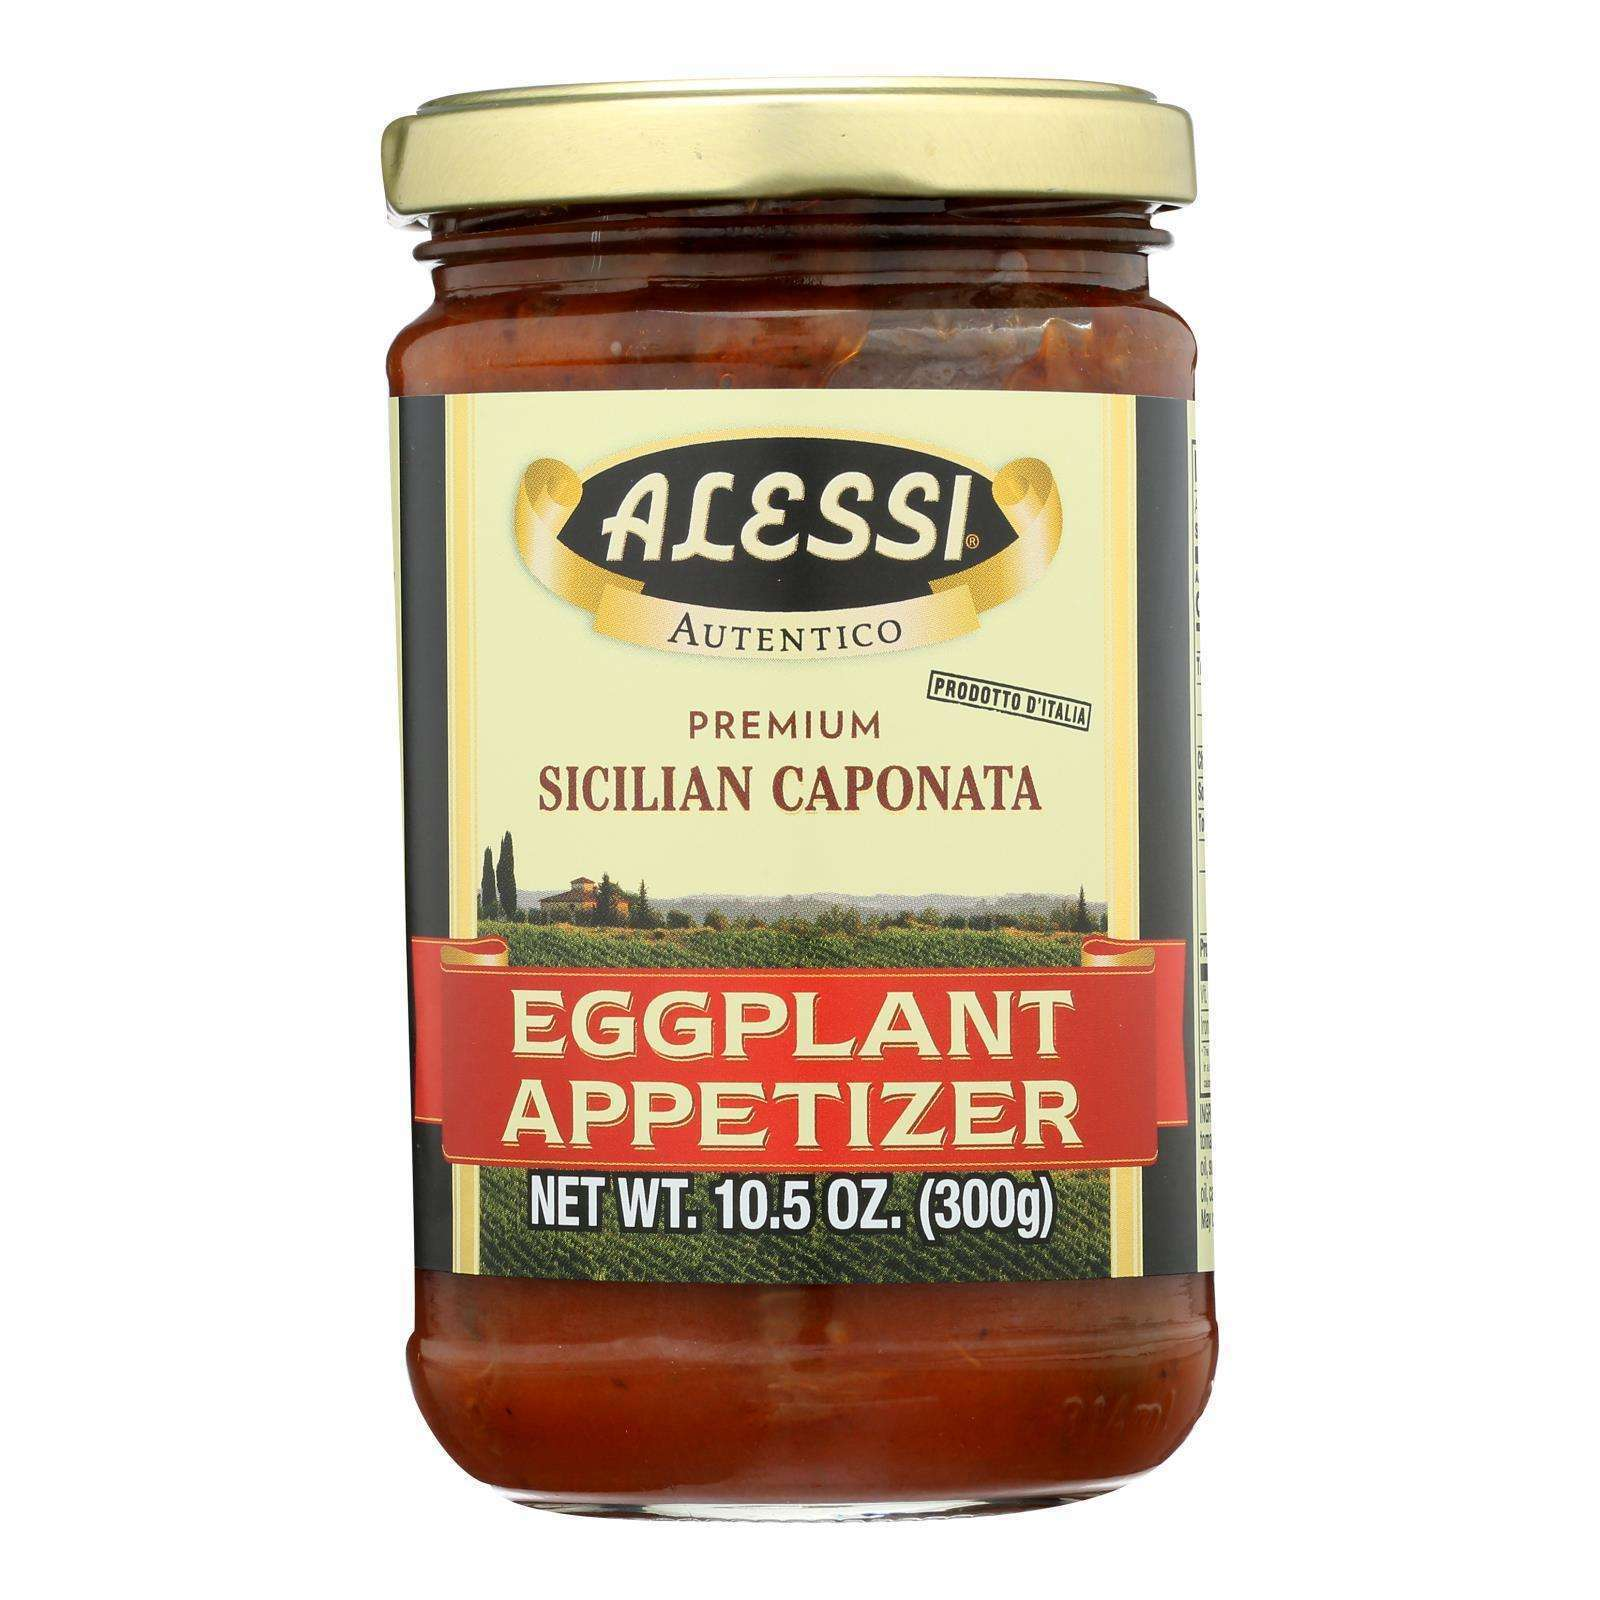 Alessi - Eggplant Appetizer - Caponata - Case Of 12 - 10.5 Oz. - BeeGreen